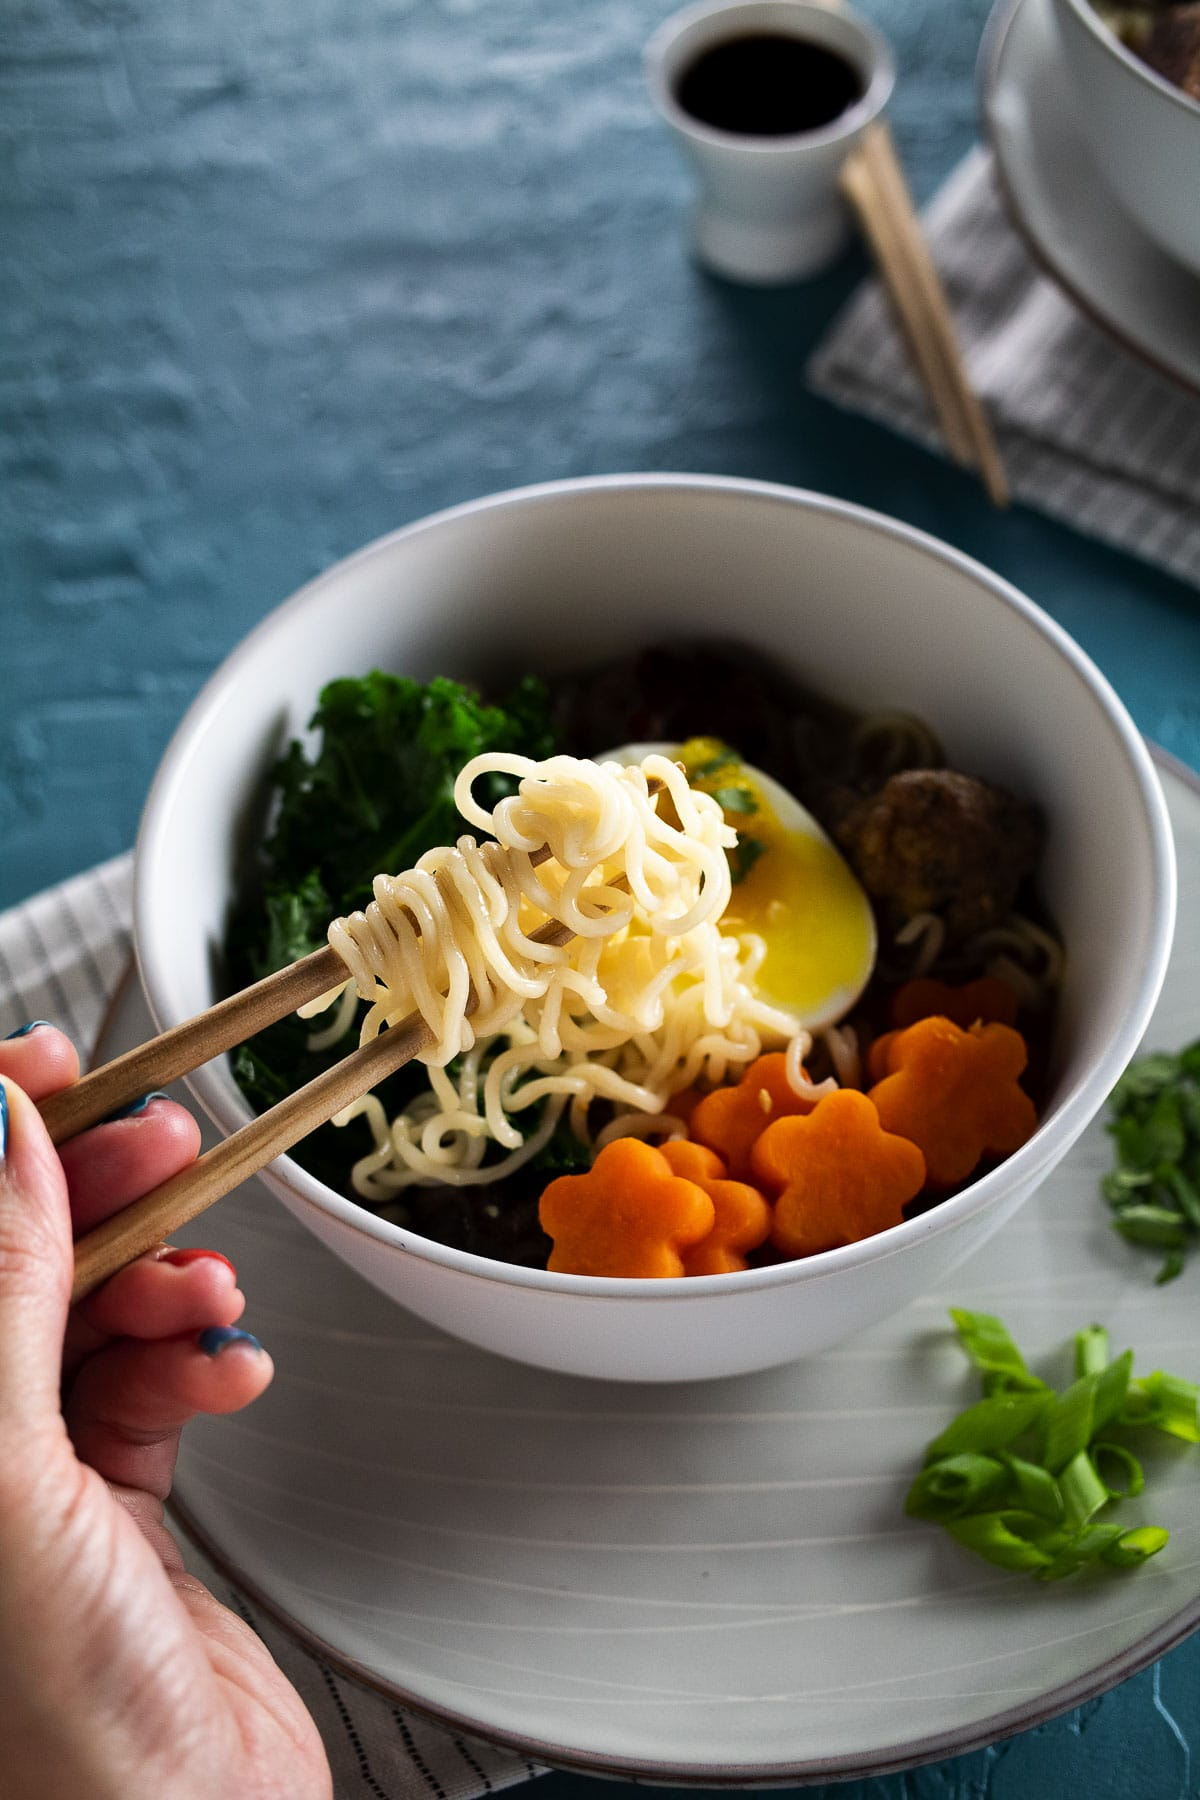 This is an image of our turkey meatballs and sweet potato ramen.